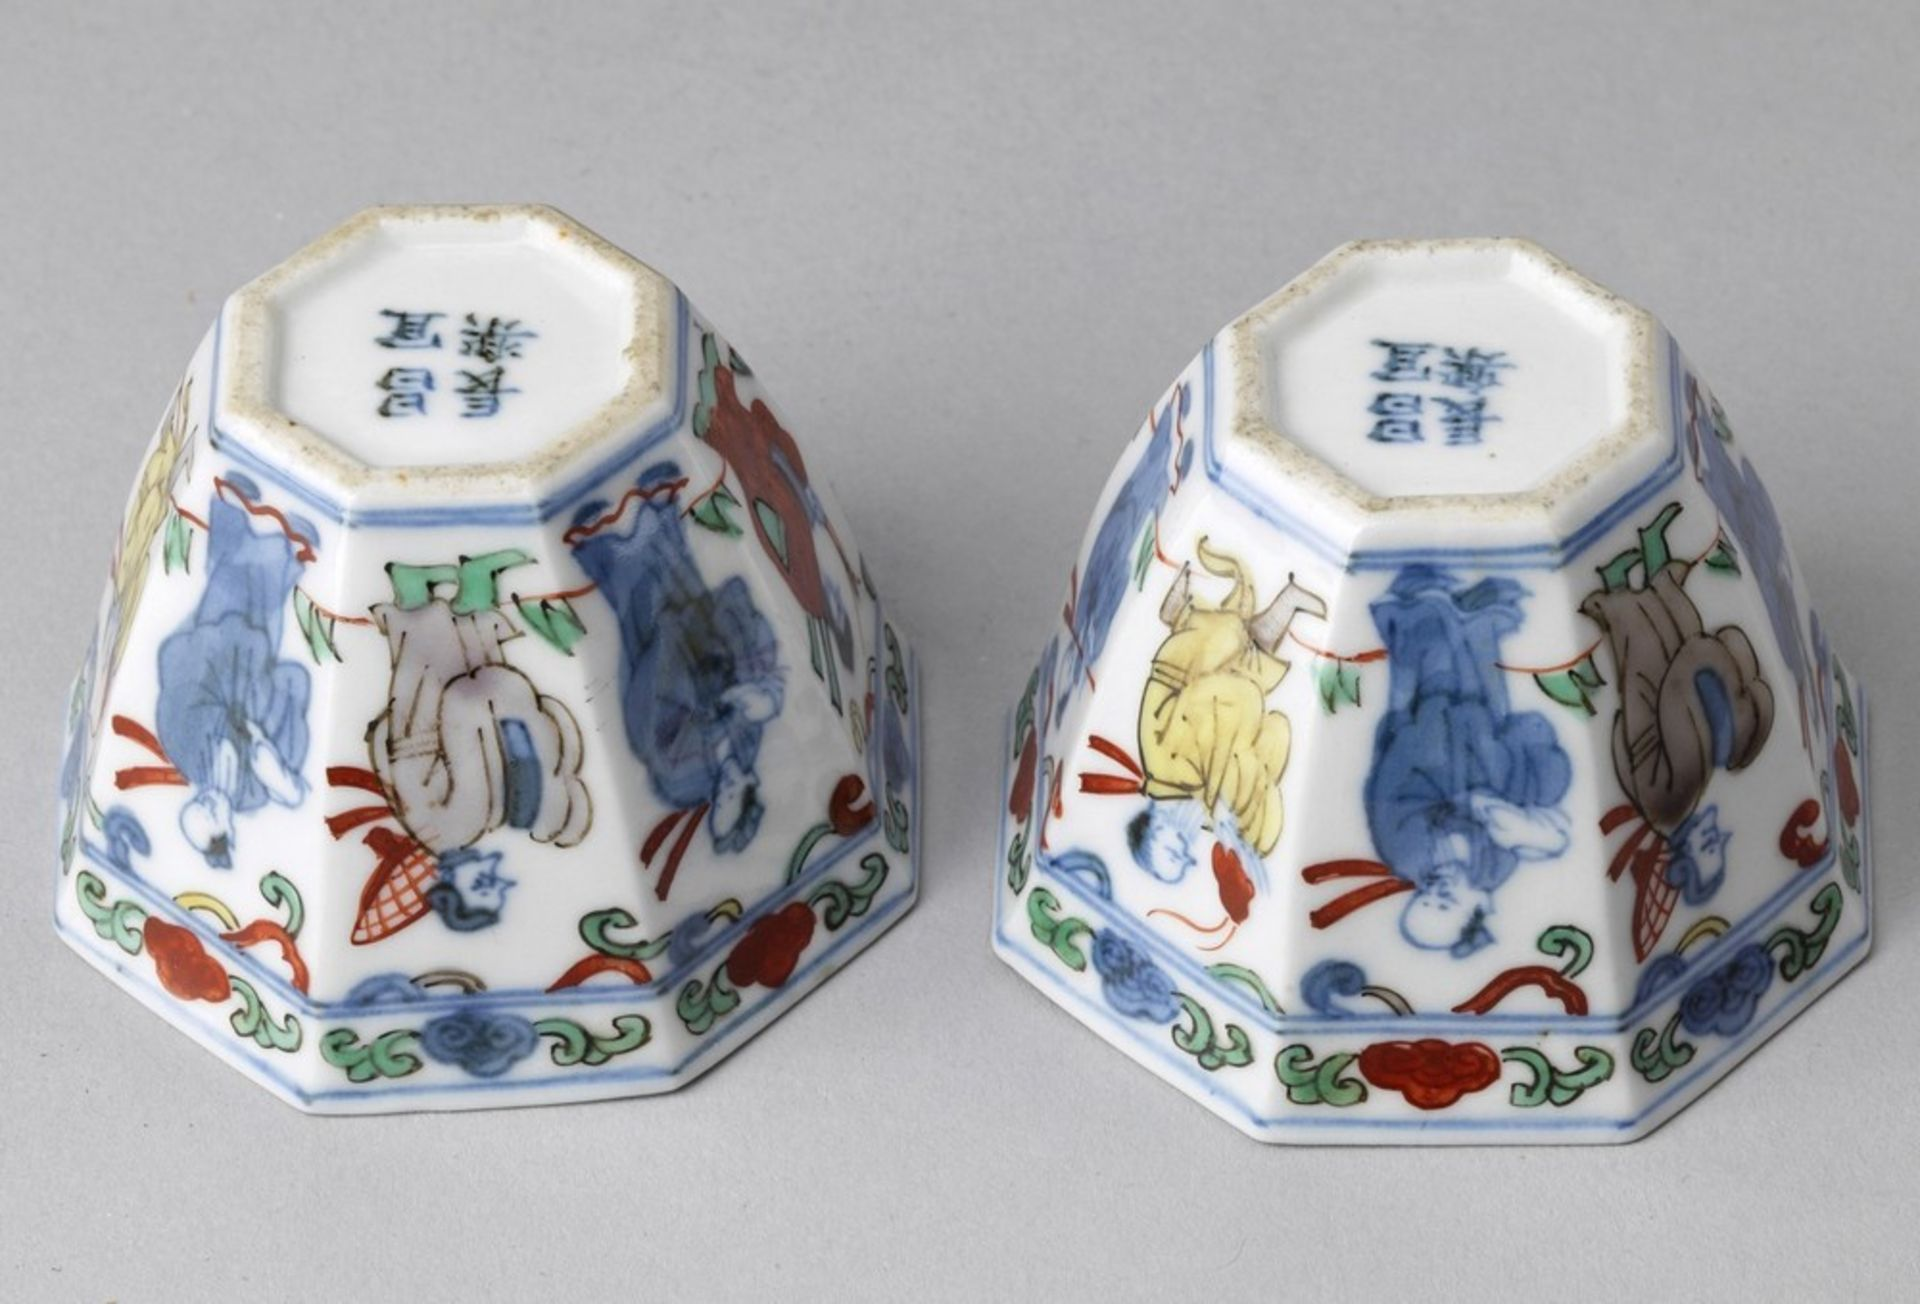 Arte Cinese A pair of wucai porcelain cups China, Qing dynasty, 18th century (?) . - Image 3 of 3